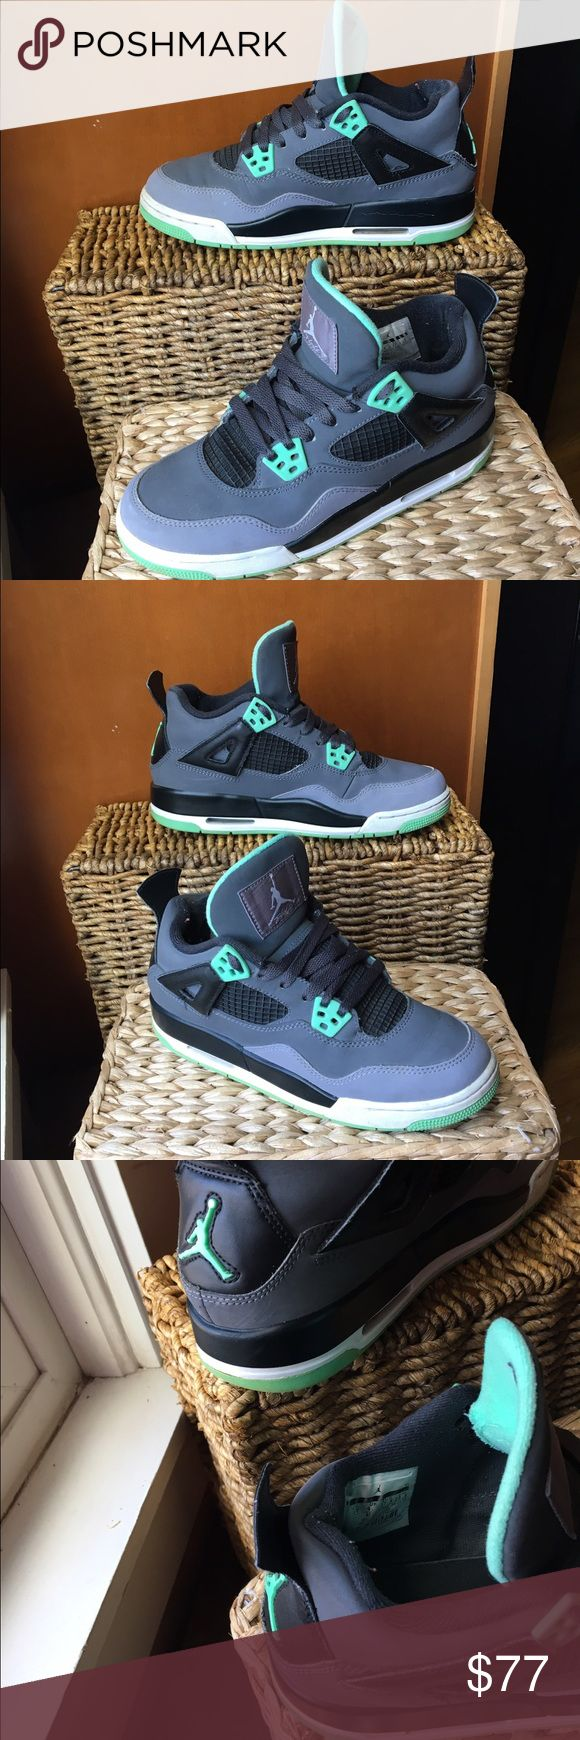 """Air Jordan 4 Retro Green Glow size 5Y NIKE AIR JORDAN 4 RETRO (GS) """"GREEN GLOW"""" drk grey, grn glw-cmnt gry-blck 